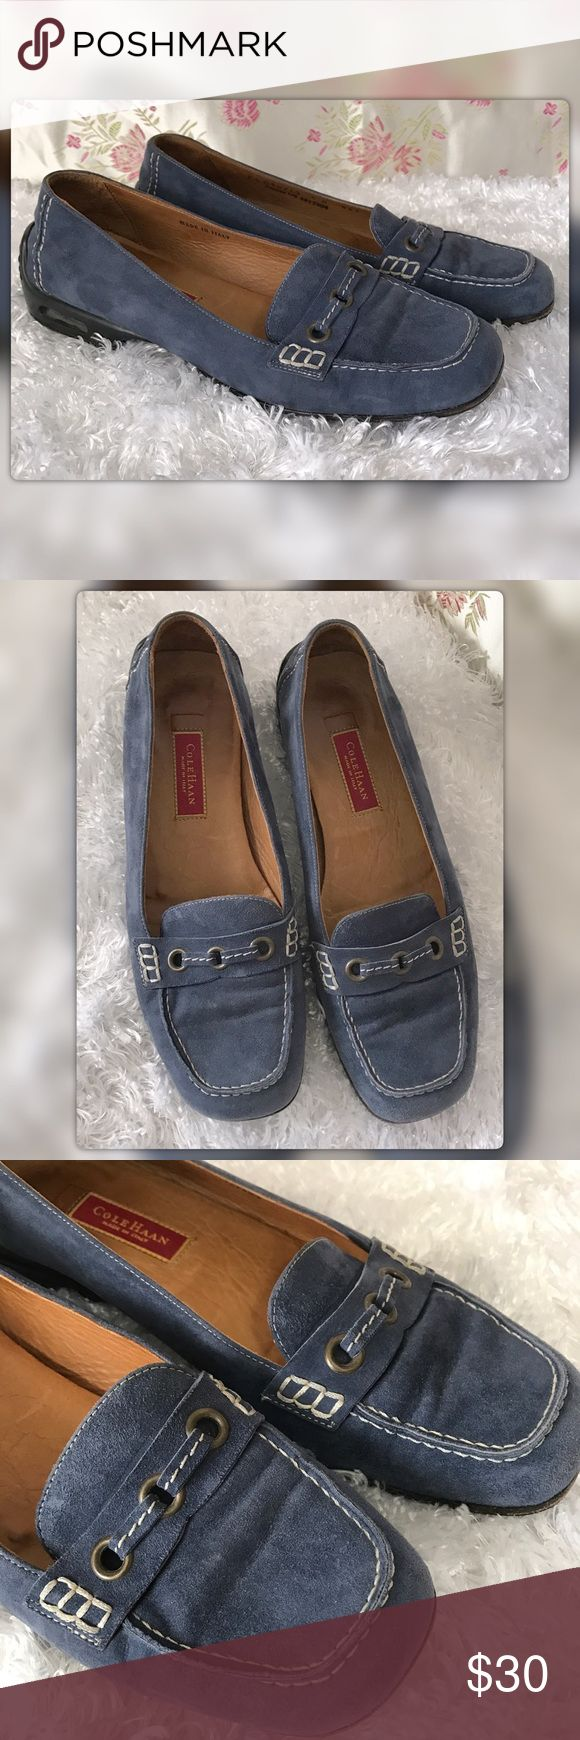 Cole Hann 6B Blue Suede Driving Moccasins Cole Hann 6B Blue Suede Driving Moccasins. Made in Italy. Gently used with no flaws Cole Haan Shoes Flats & Loafers